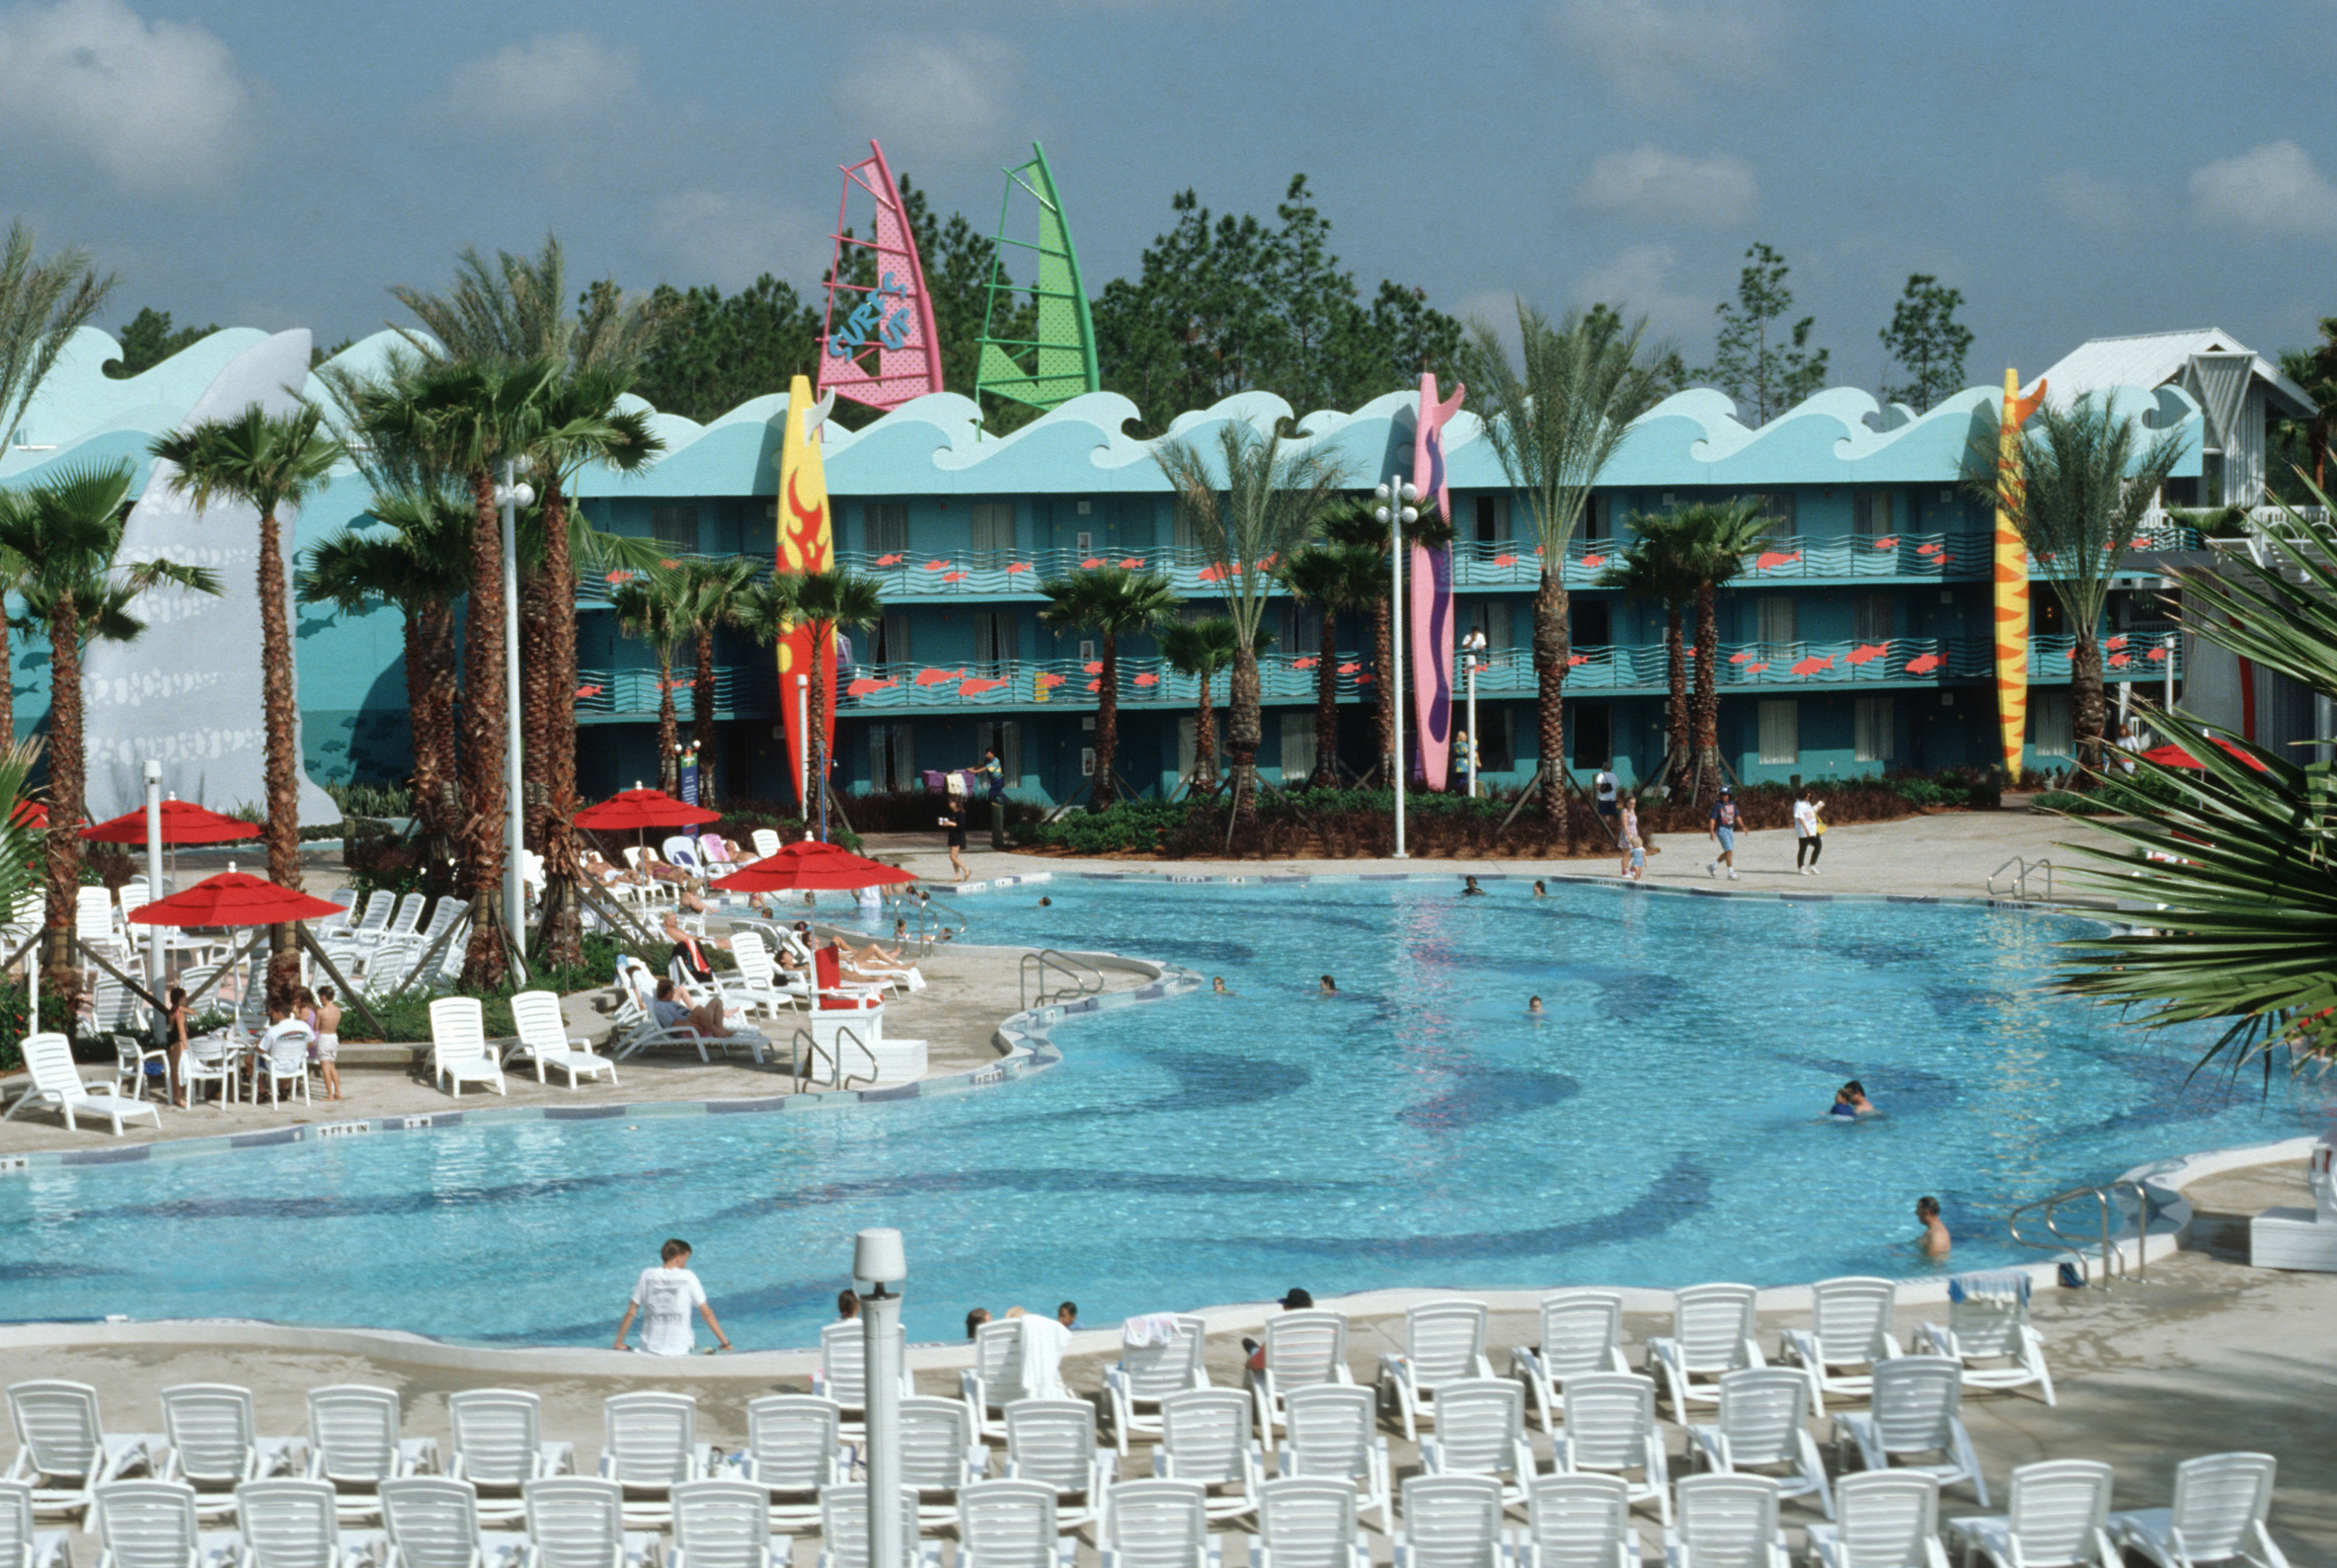 Disneys AllStar Sports Resort